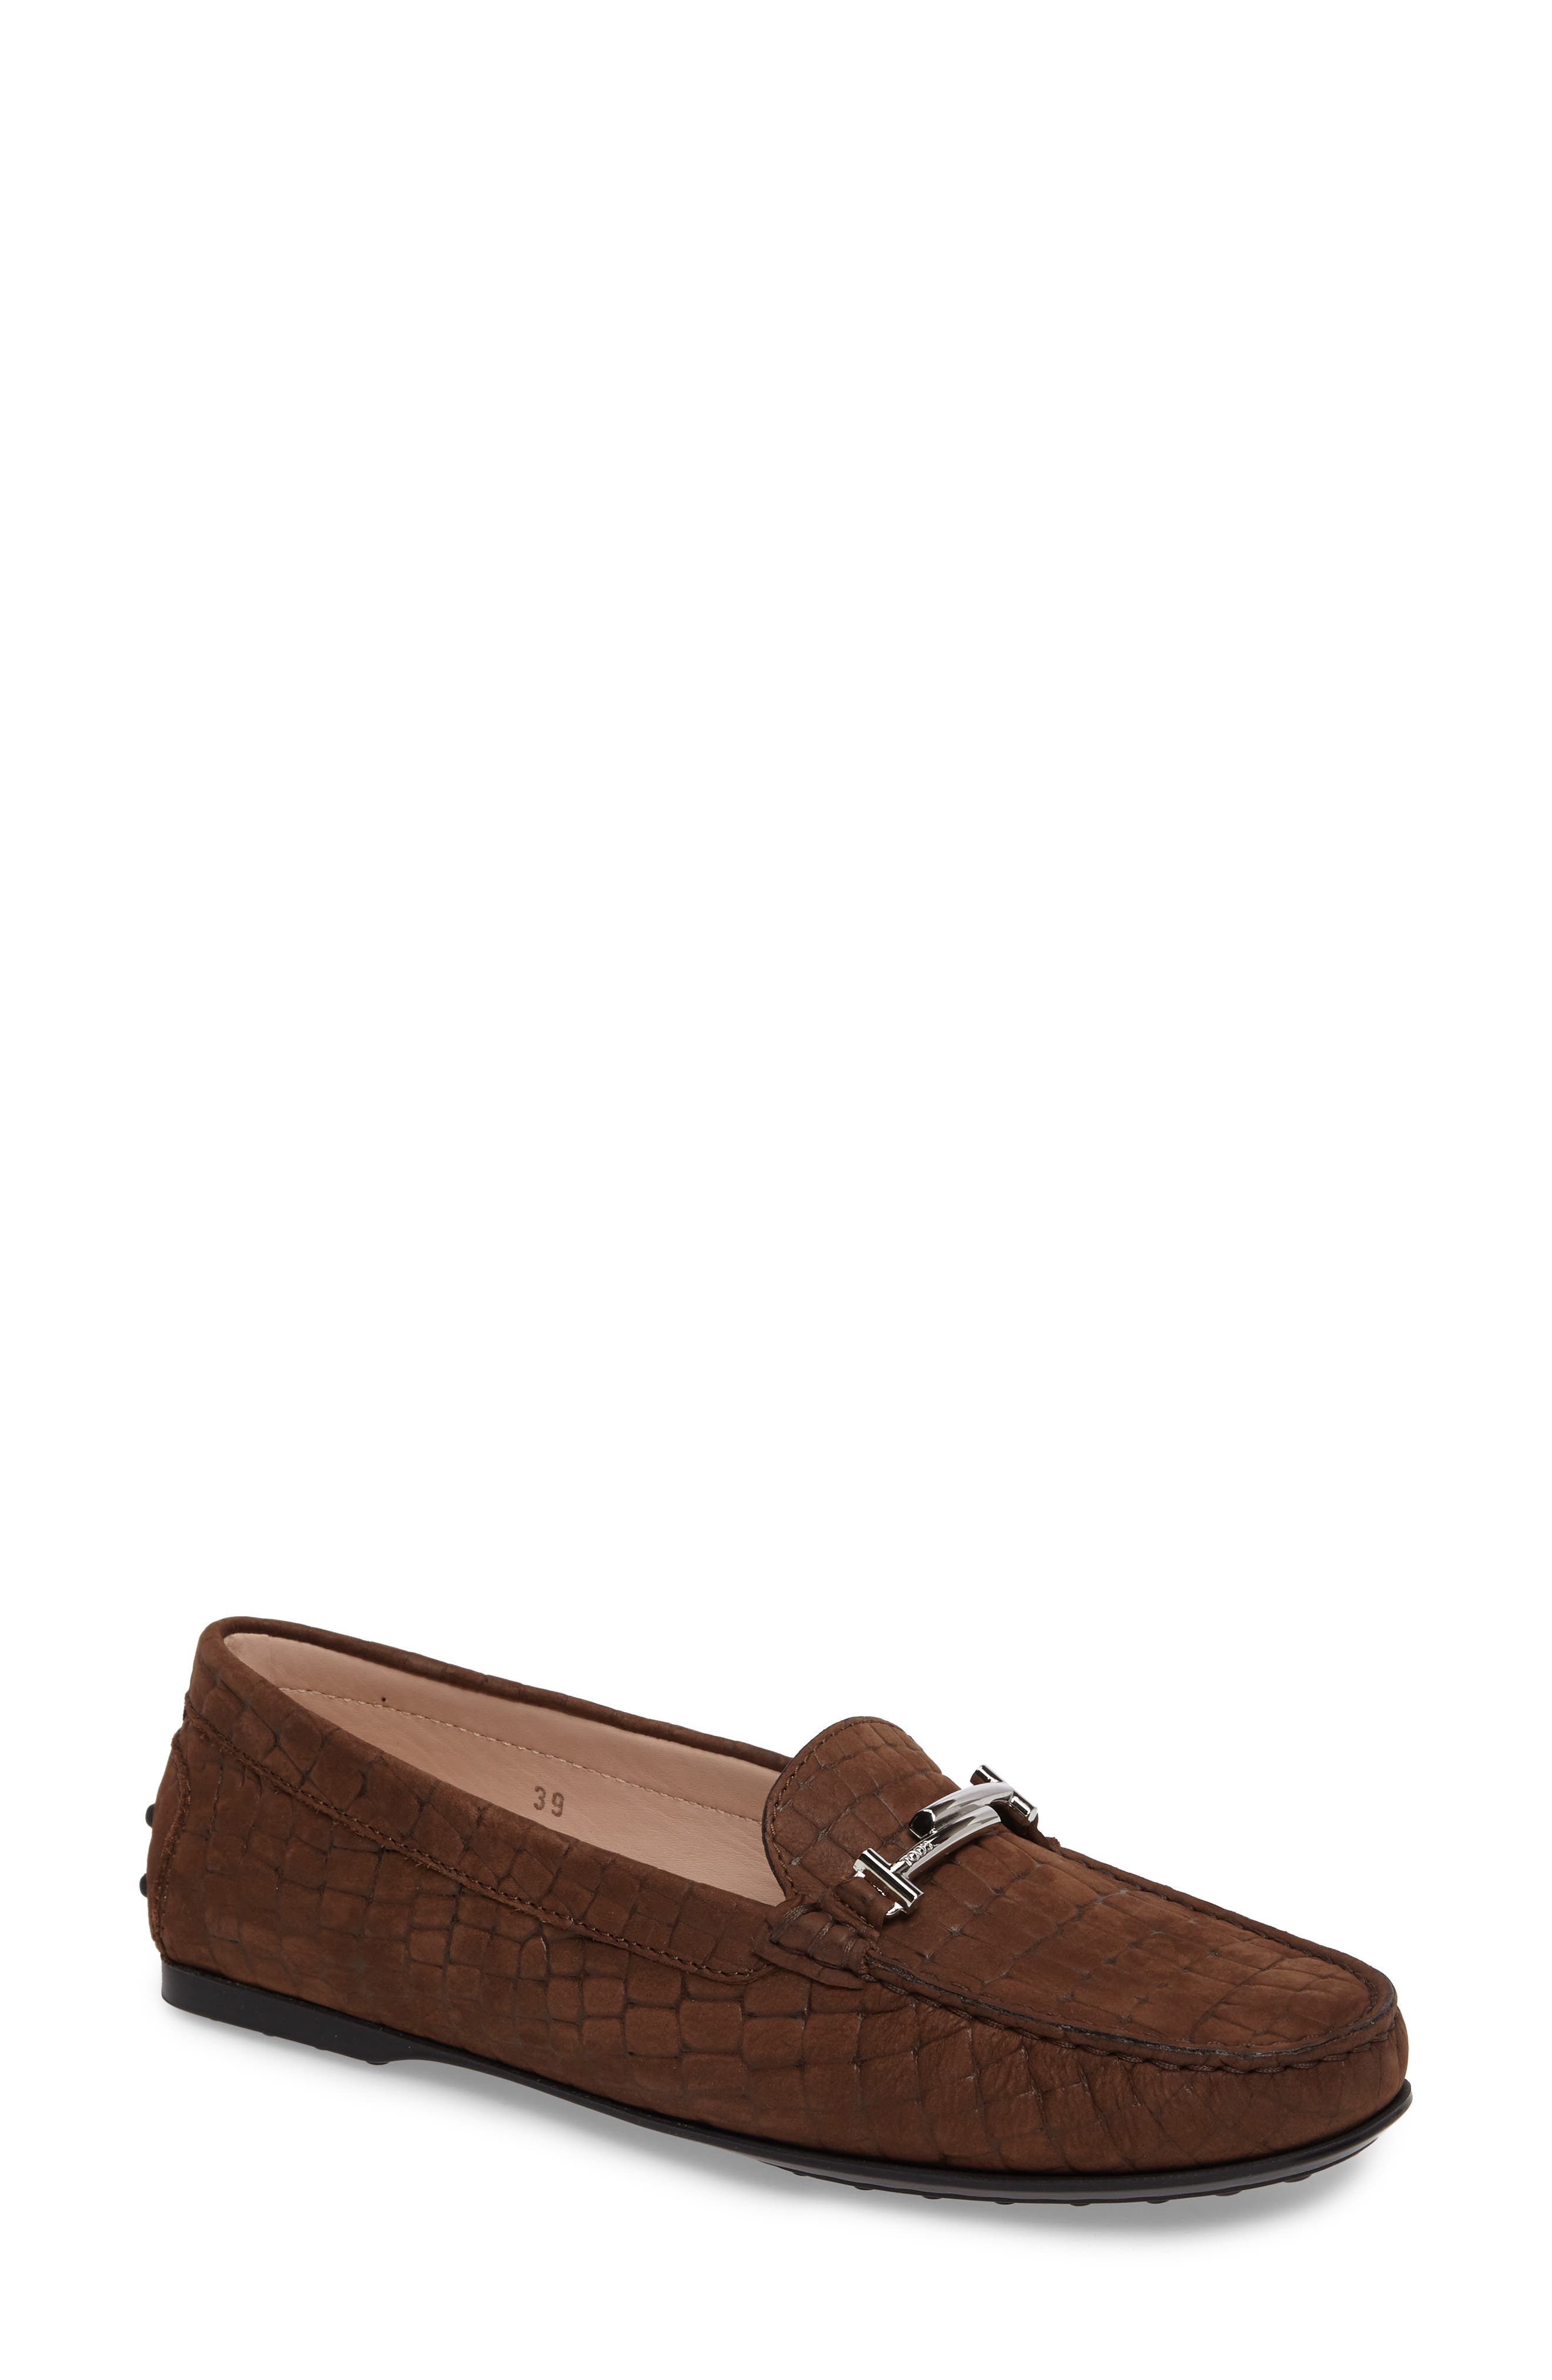 Tods Croc Embossed Double T Loafer (Women)